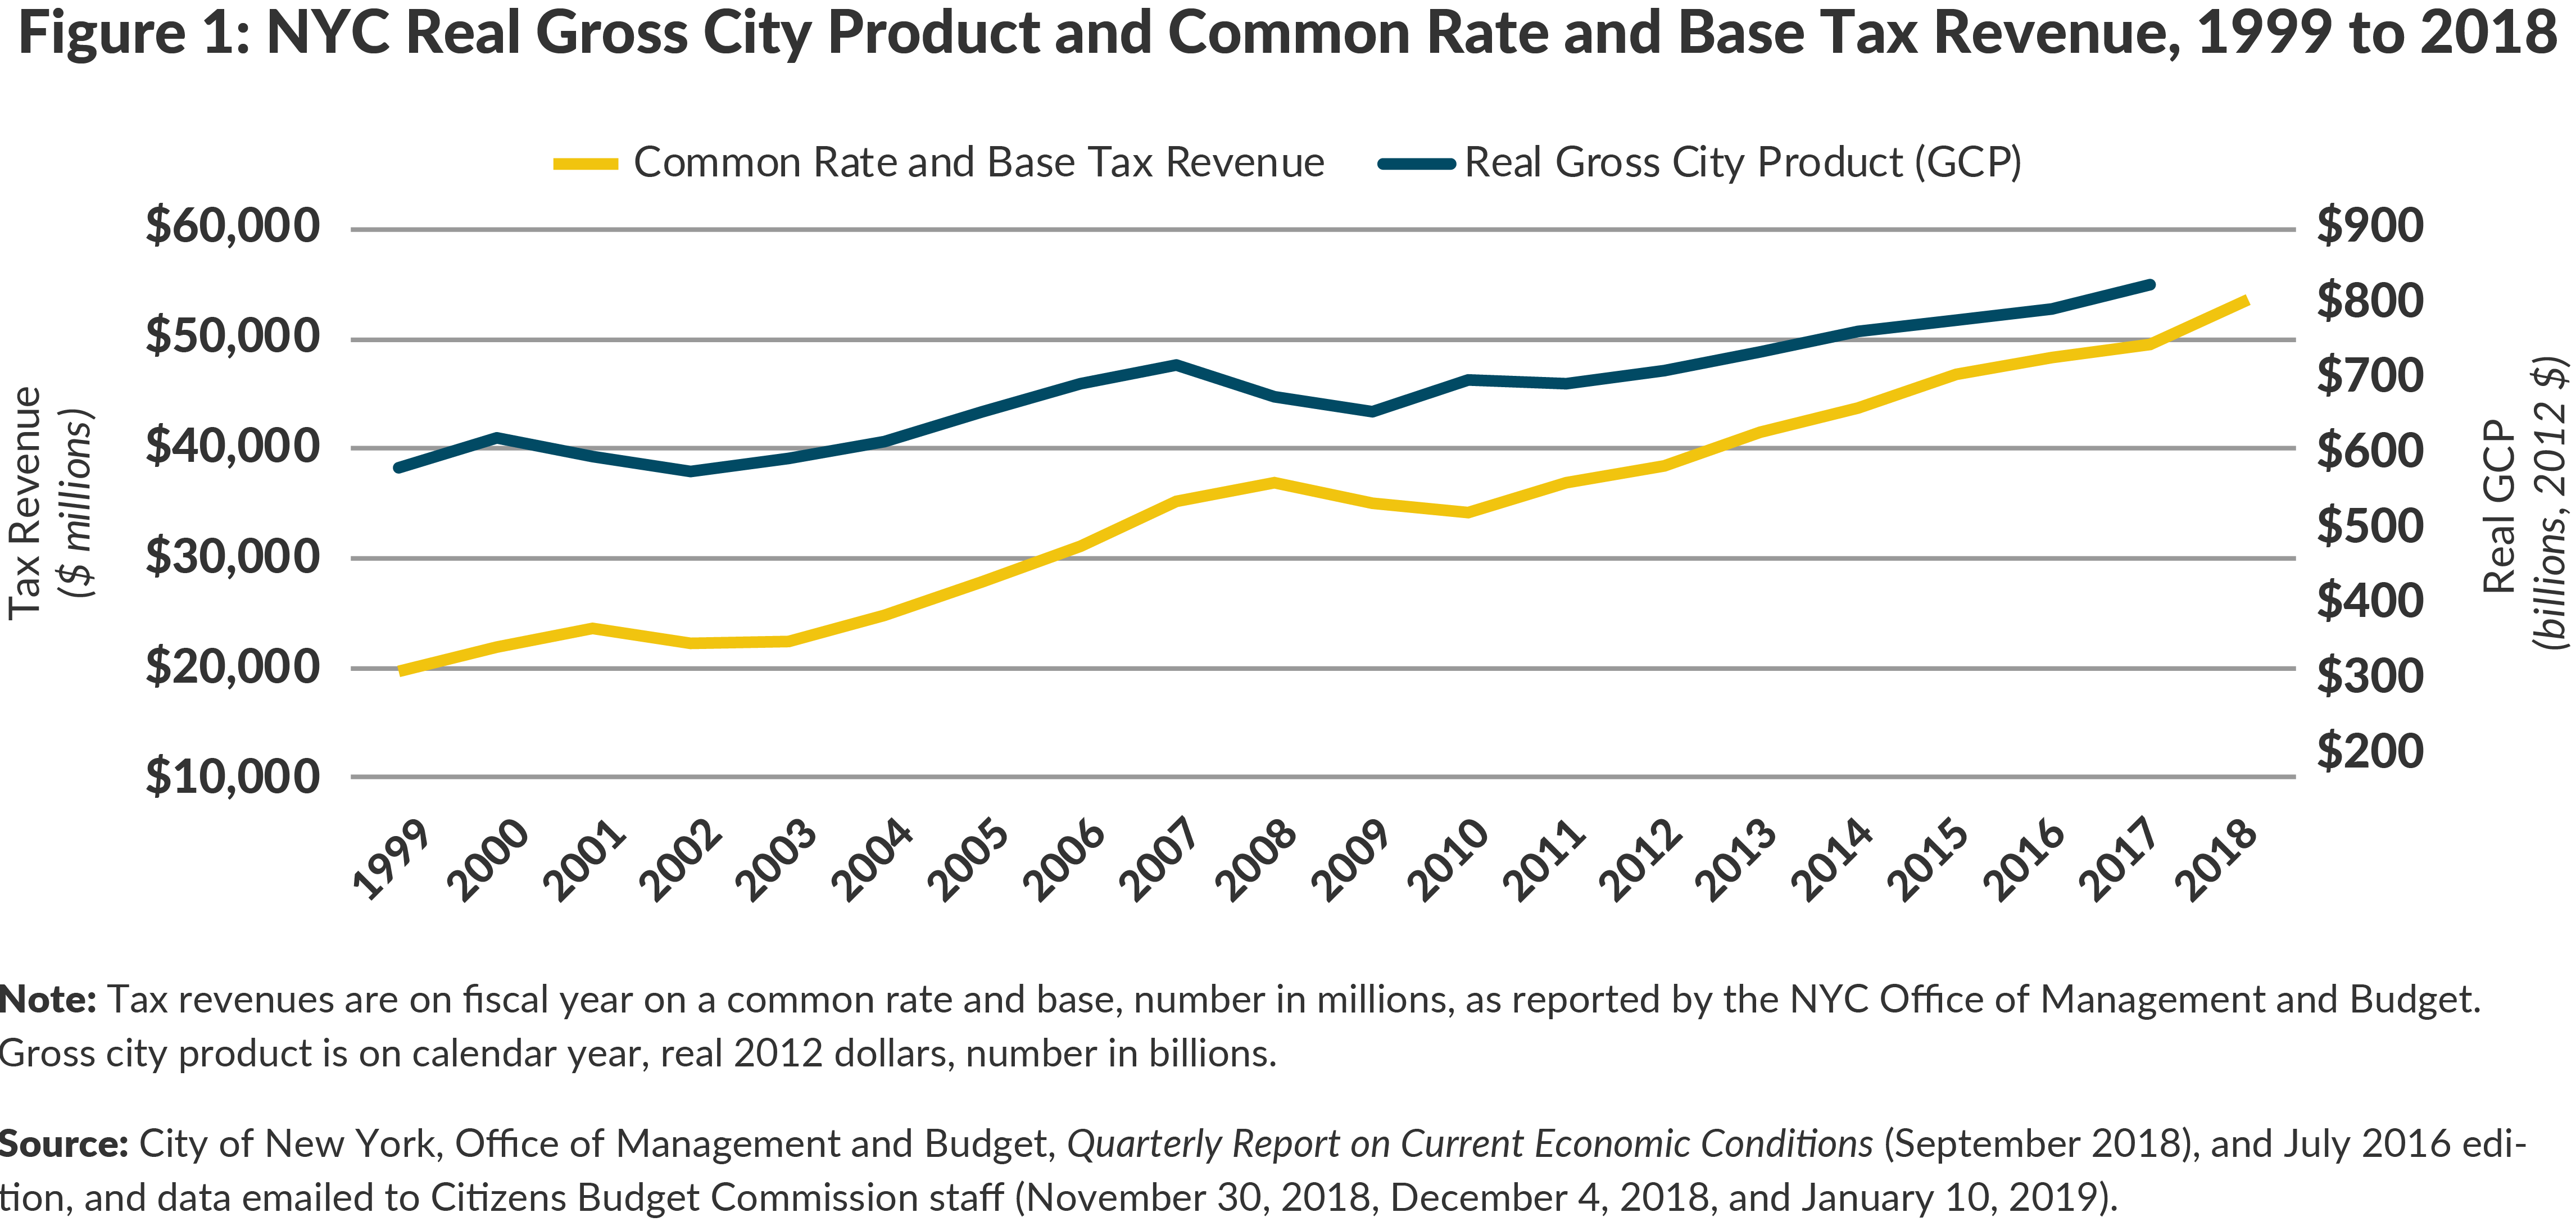 Figure 1: NYC Real Gross City Product and Common Rate and Base Tax Revenue, 1999 to 2018